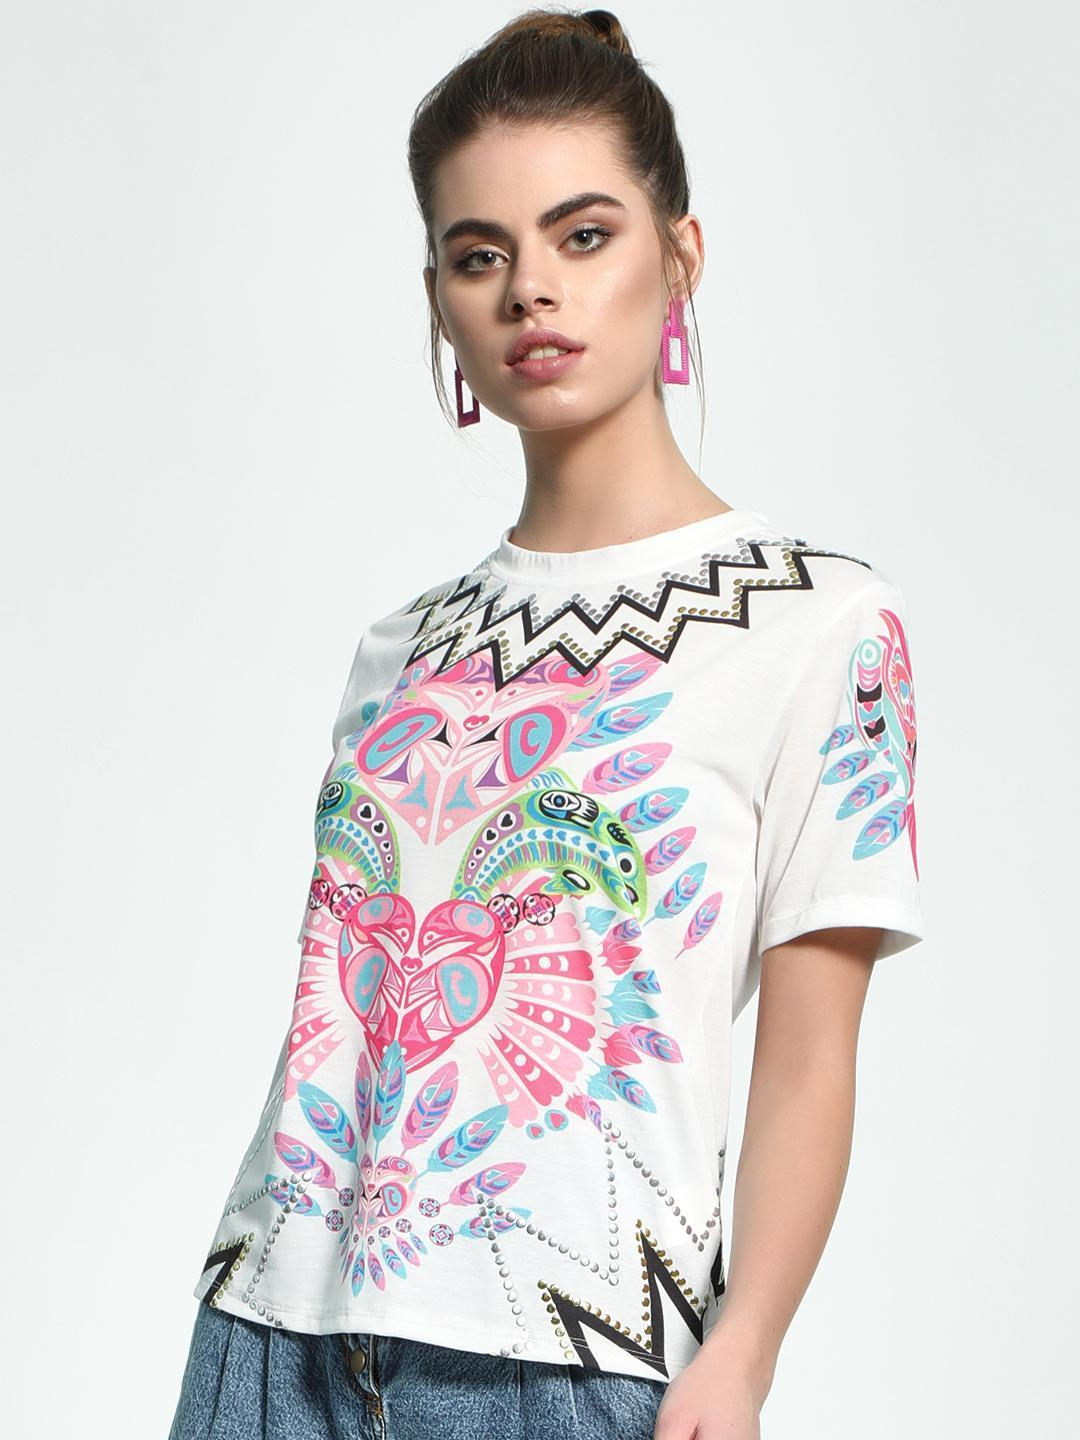 Manish Arora Paris X KOOVS Multi Digital Placement Print Studded T-Shirt 1